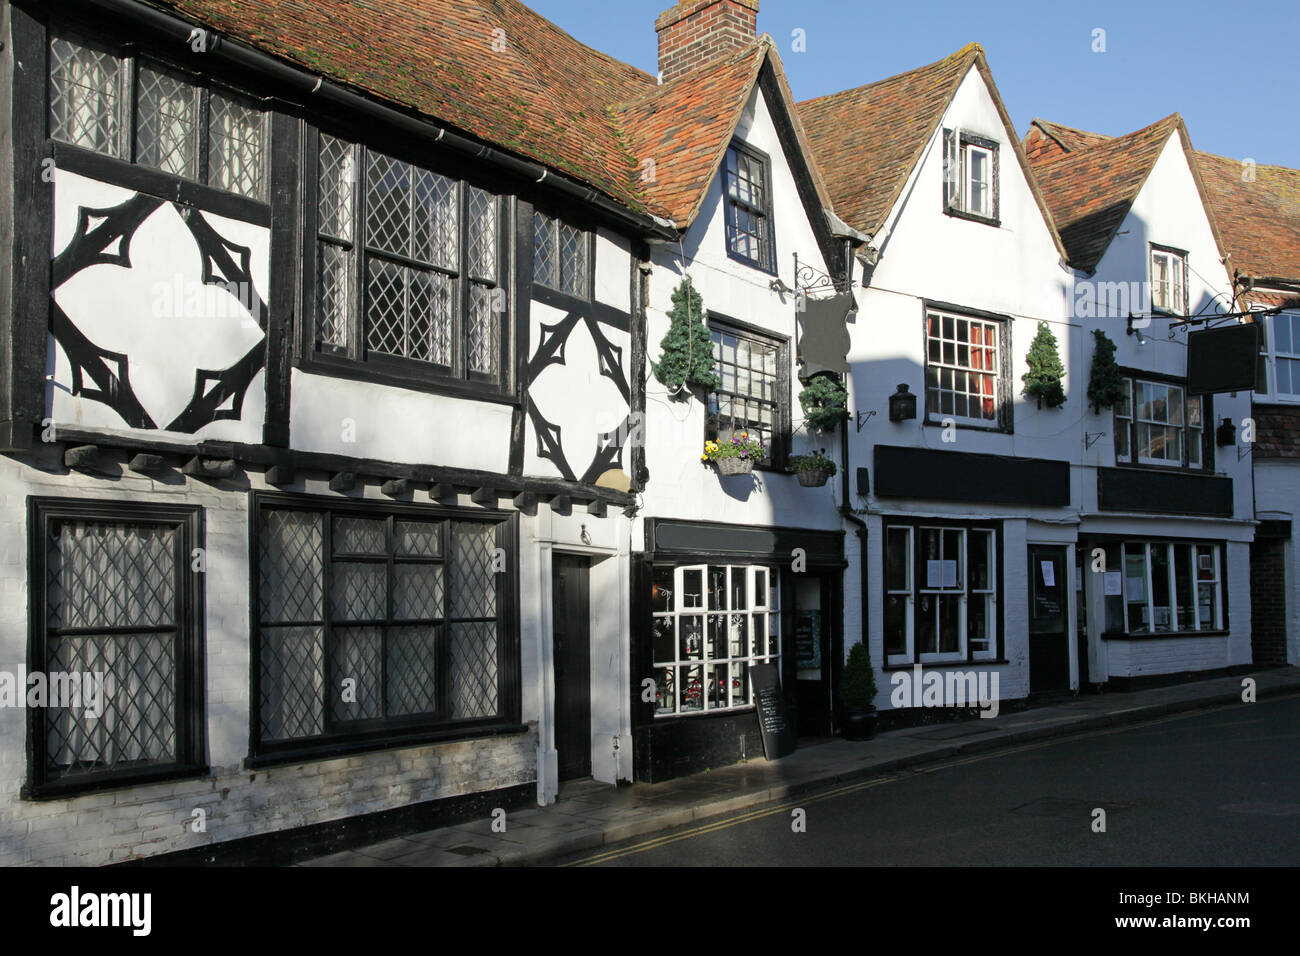 The wood timbered buildings that line the high street of Rye in East Sussex, England, UK - Stock Image